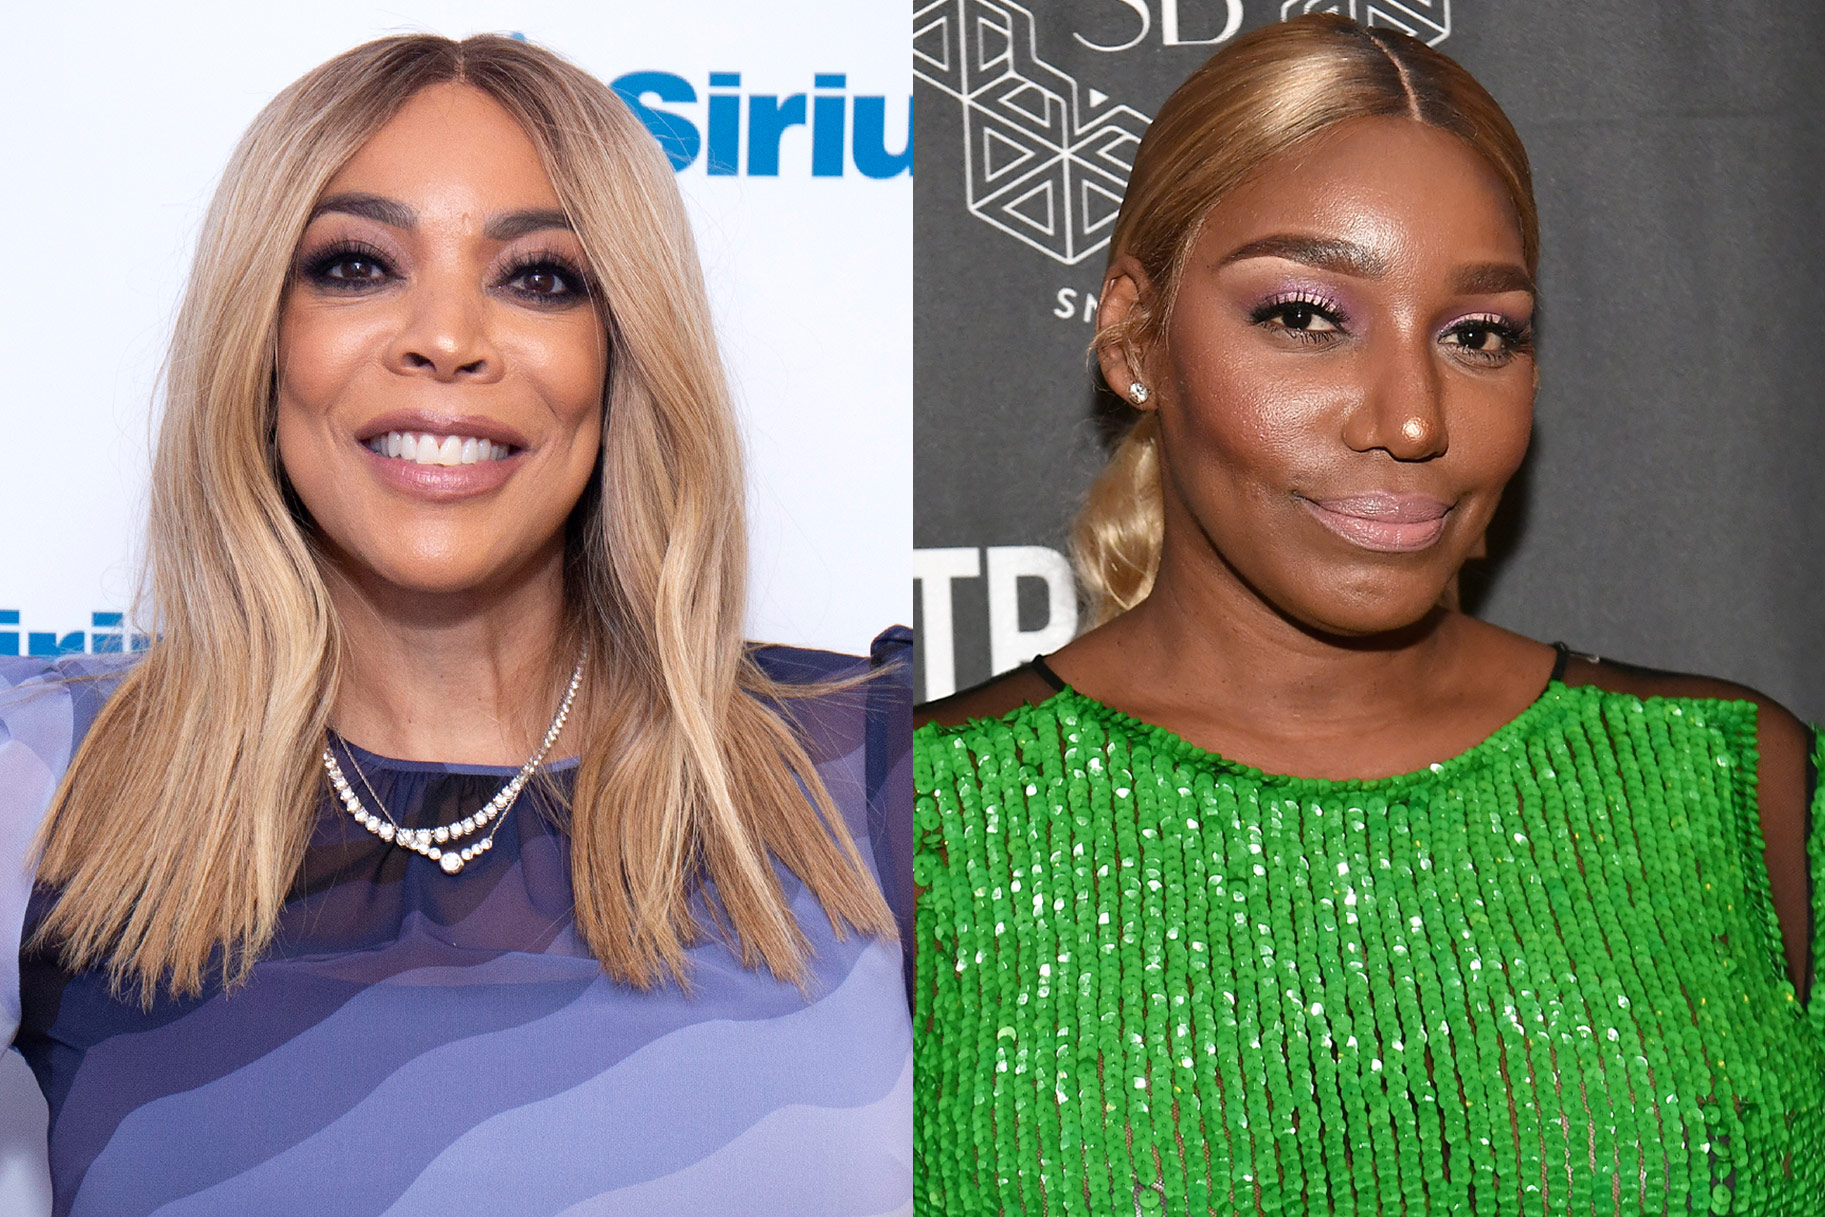 NeNe Leakes Has A NYC Date Night With Wendy Williams - See The Photo Featuring The Blonde Ladies